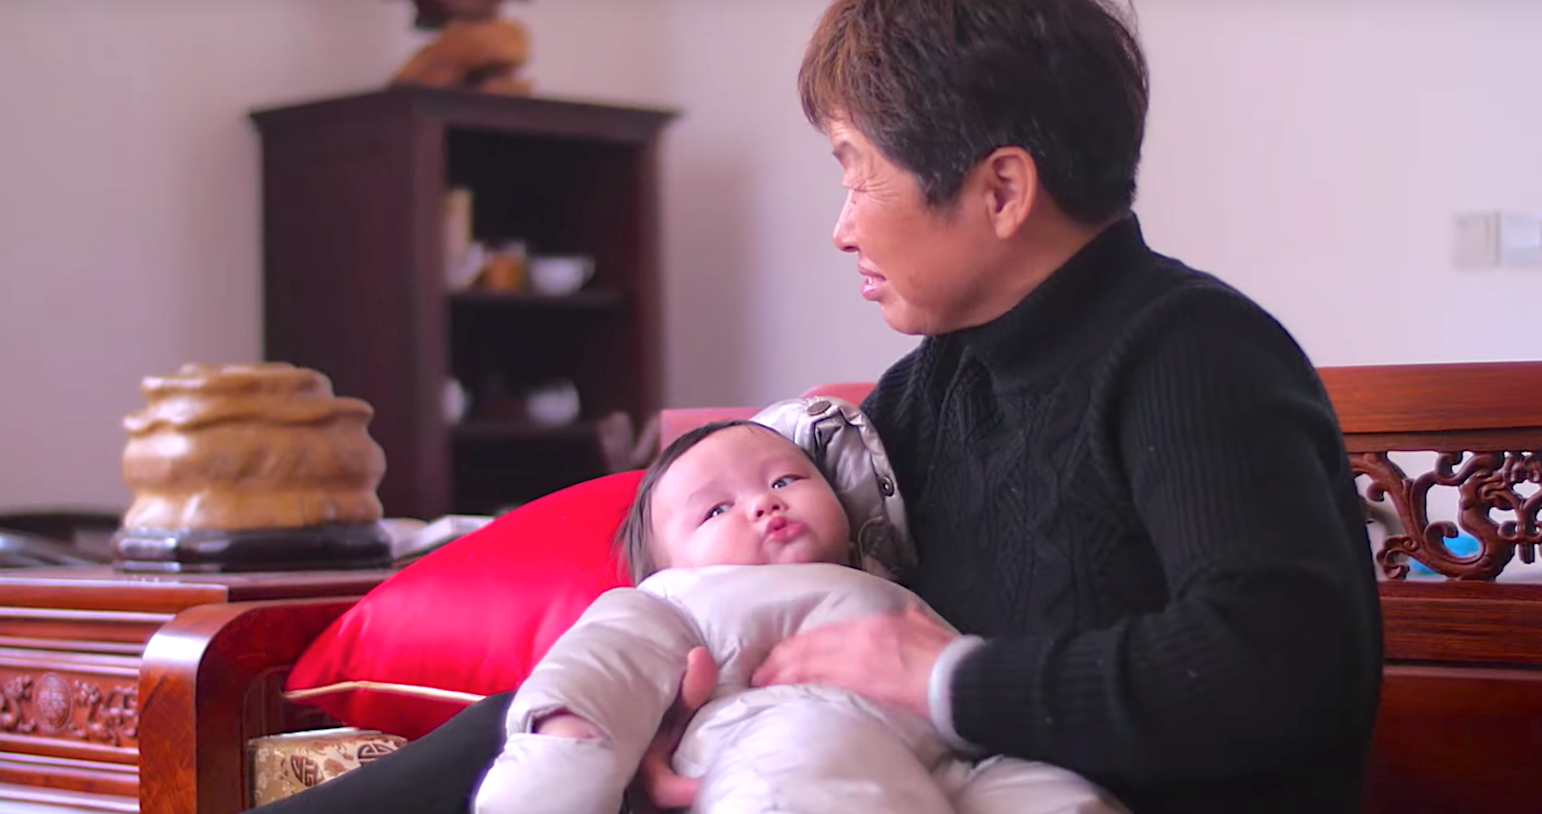 How To Recall An Email >> ONE CHILD NATION (2019): New Trailer For Documentary About China's One Child Policy… | The Movie ...